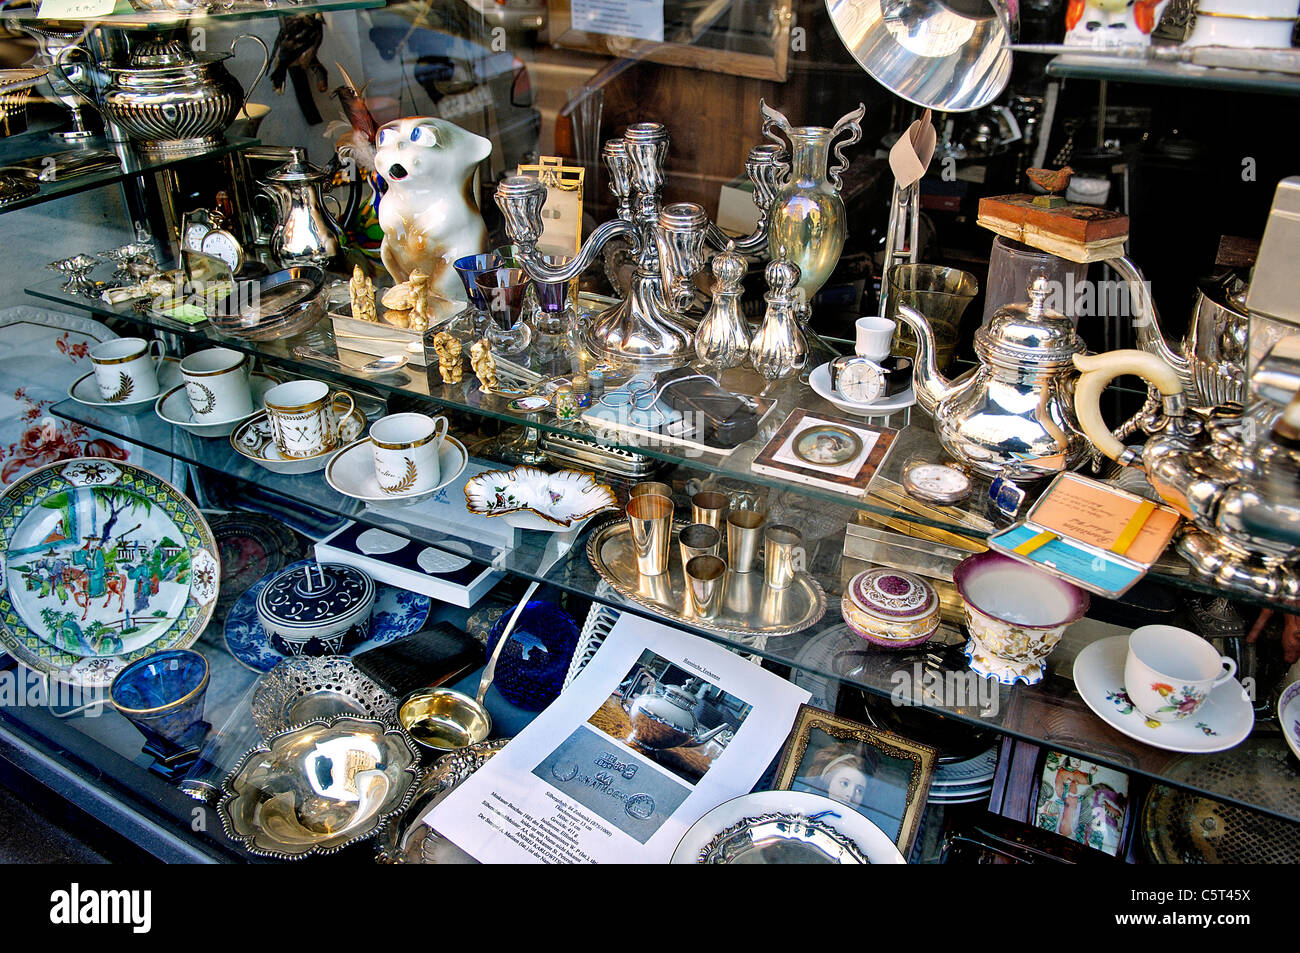 germany bavaria munich antique shop stock photo royalty free image 38024166 alamy. Black Bedroom Furniture Sets. Home Design Ideas